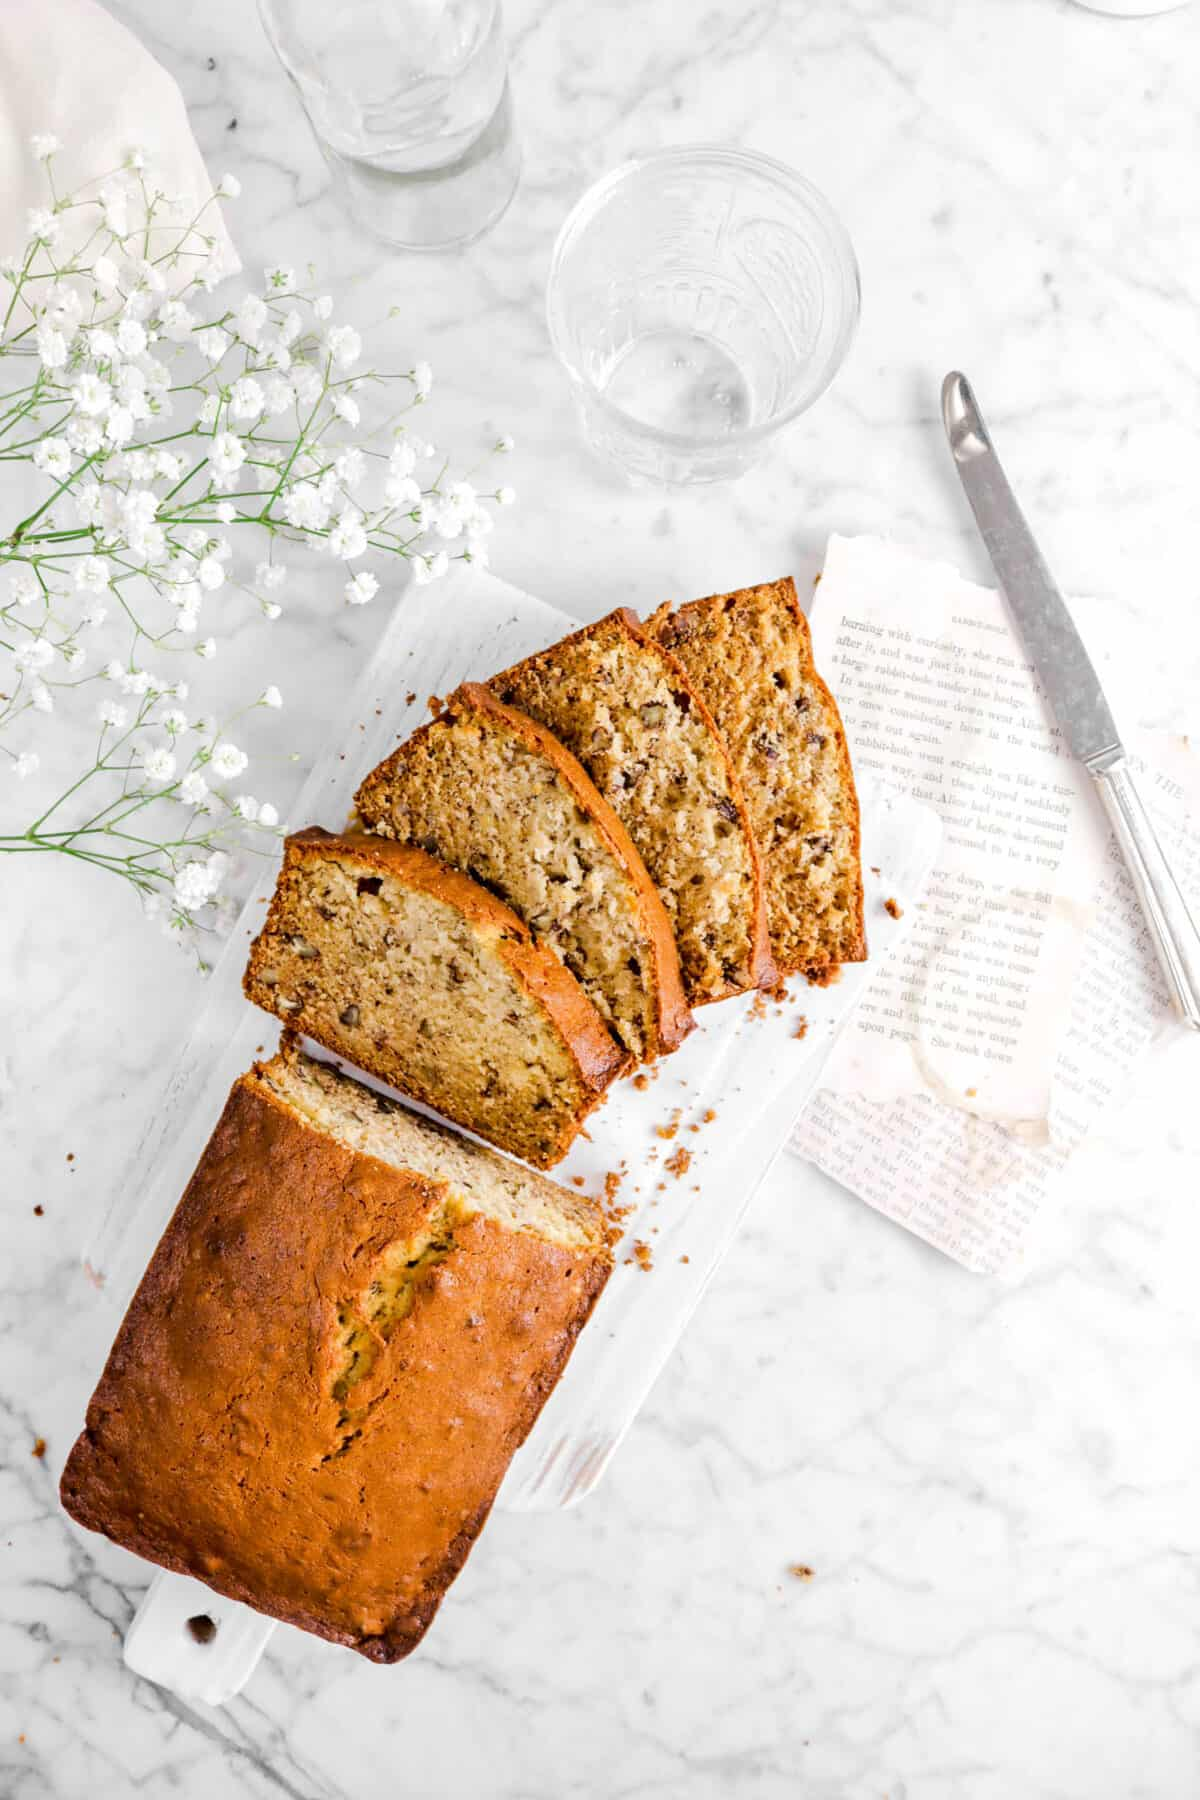 overhead shot of banana bread with four slices laying in front with flowers, glasses, a knife, and book pages